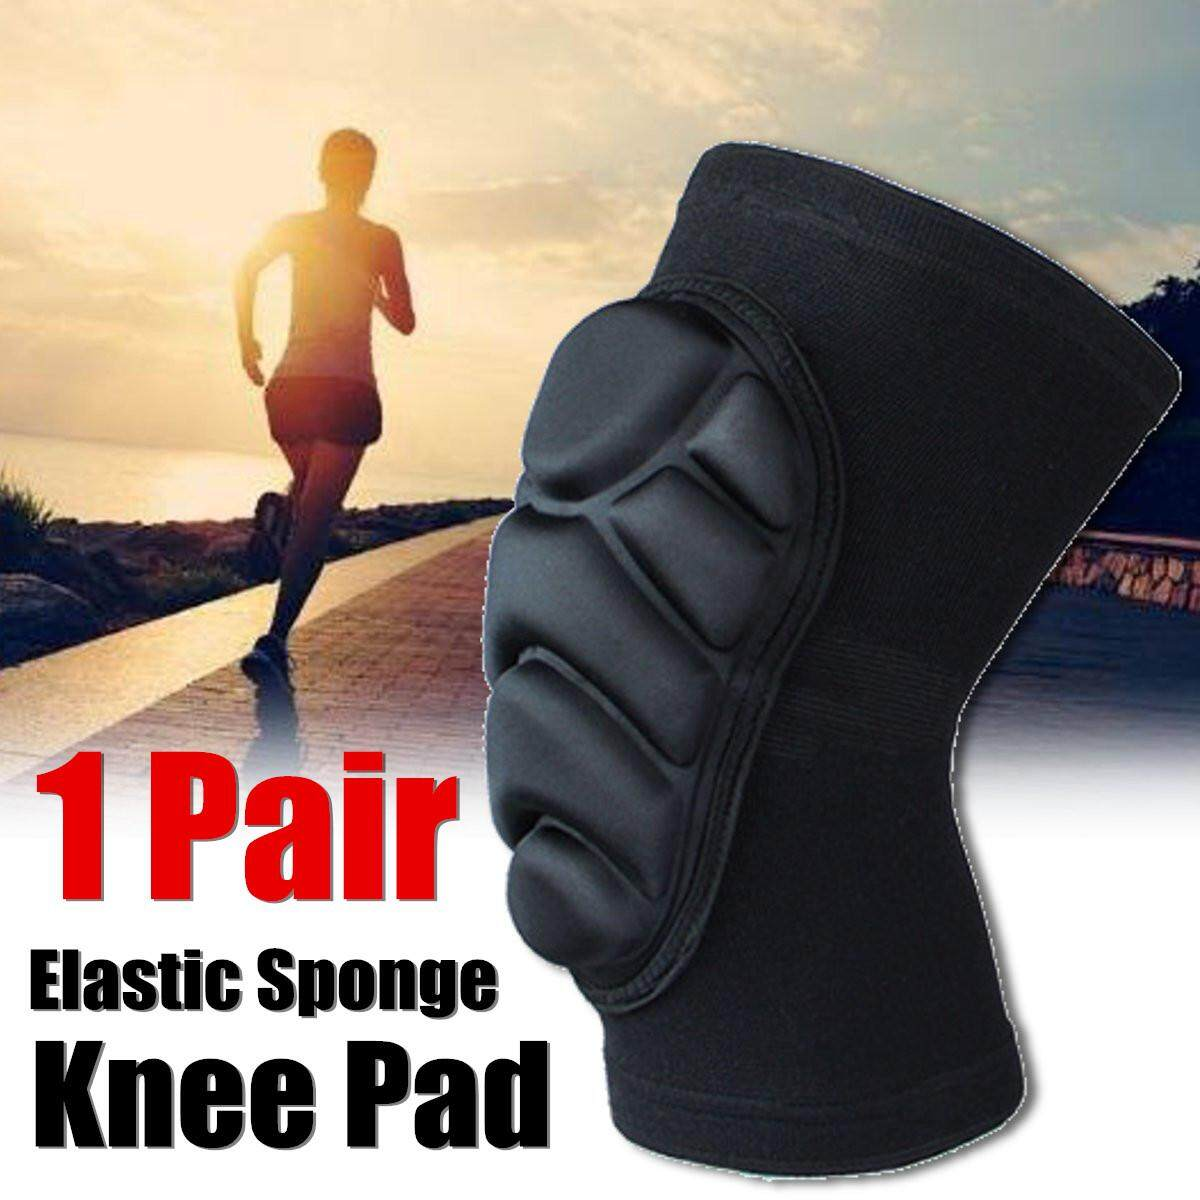 Pair Knee Pads Construction Work Sport Safety Gel Leg Protectors # XL